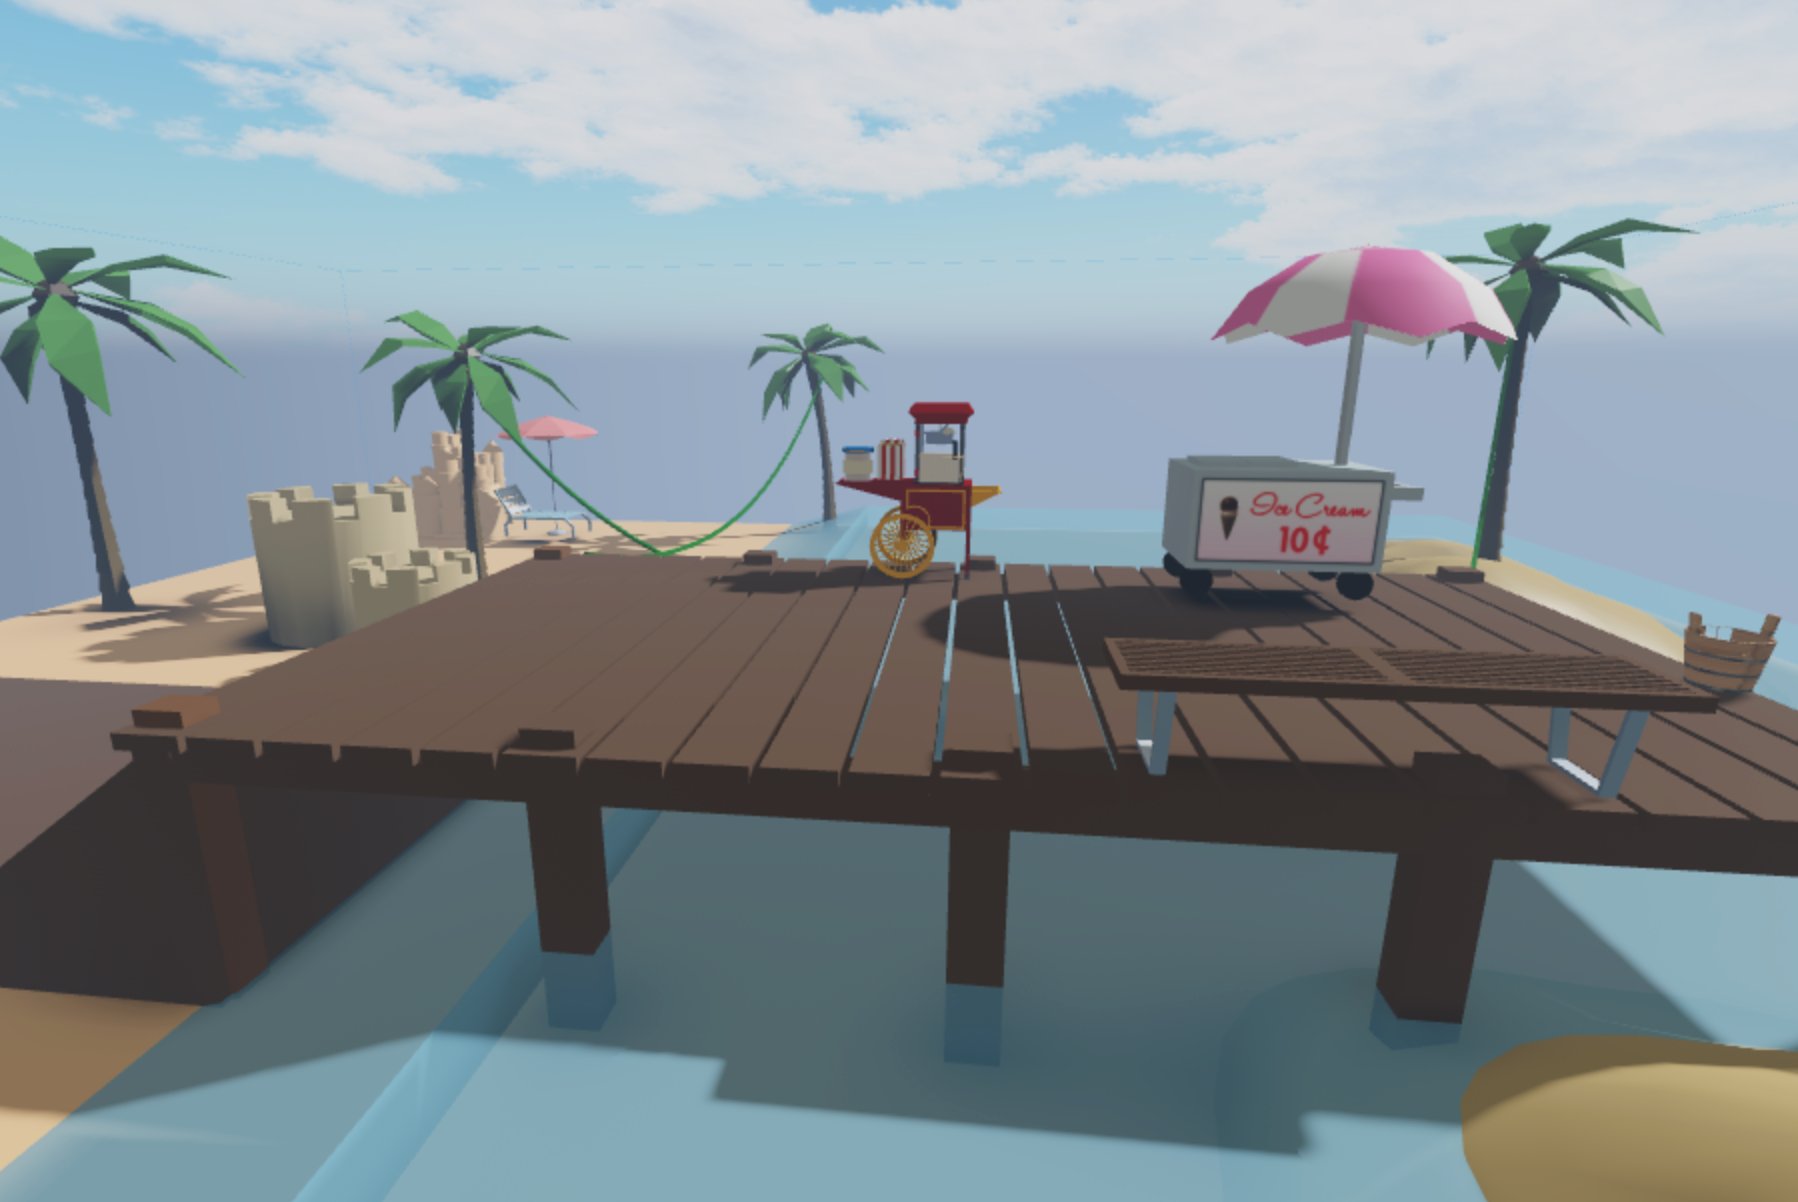 Team up with other Roblox builders to create a totally rad beach town!